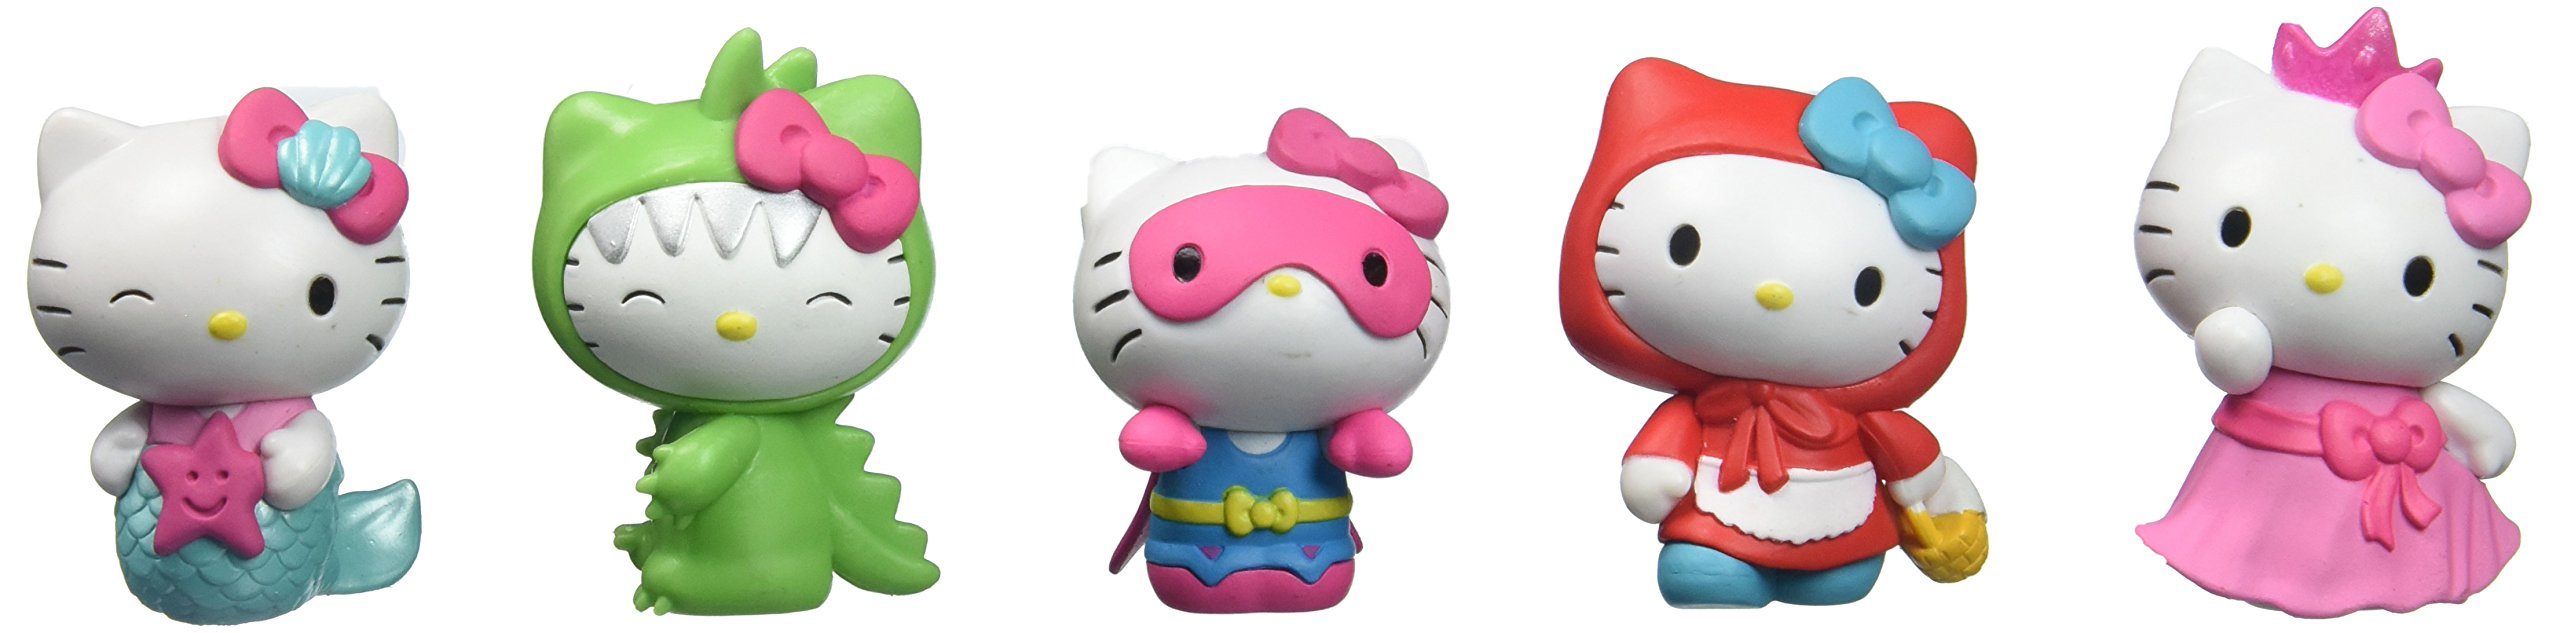 Just Play Hello Kitty Figures 5 pk Figures Toy Figure by Hello Kitty (Image #1)